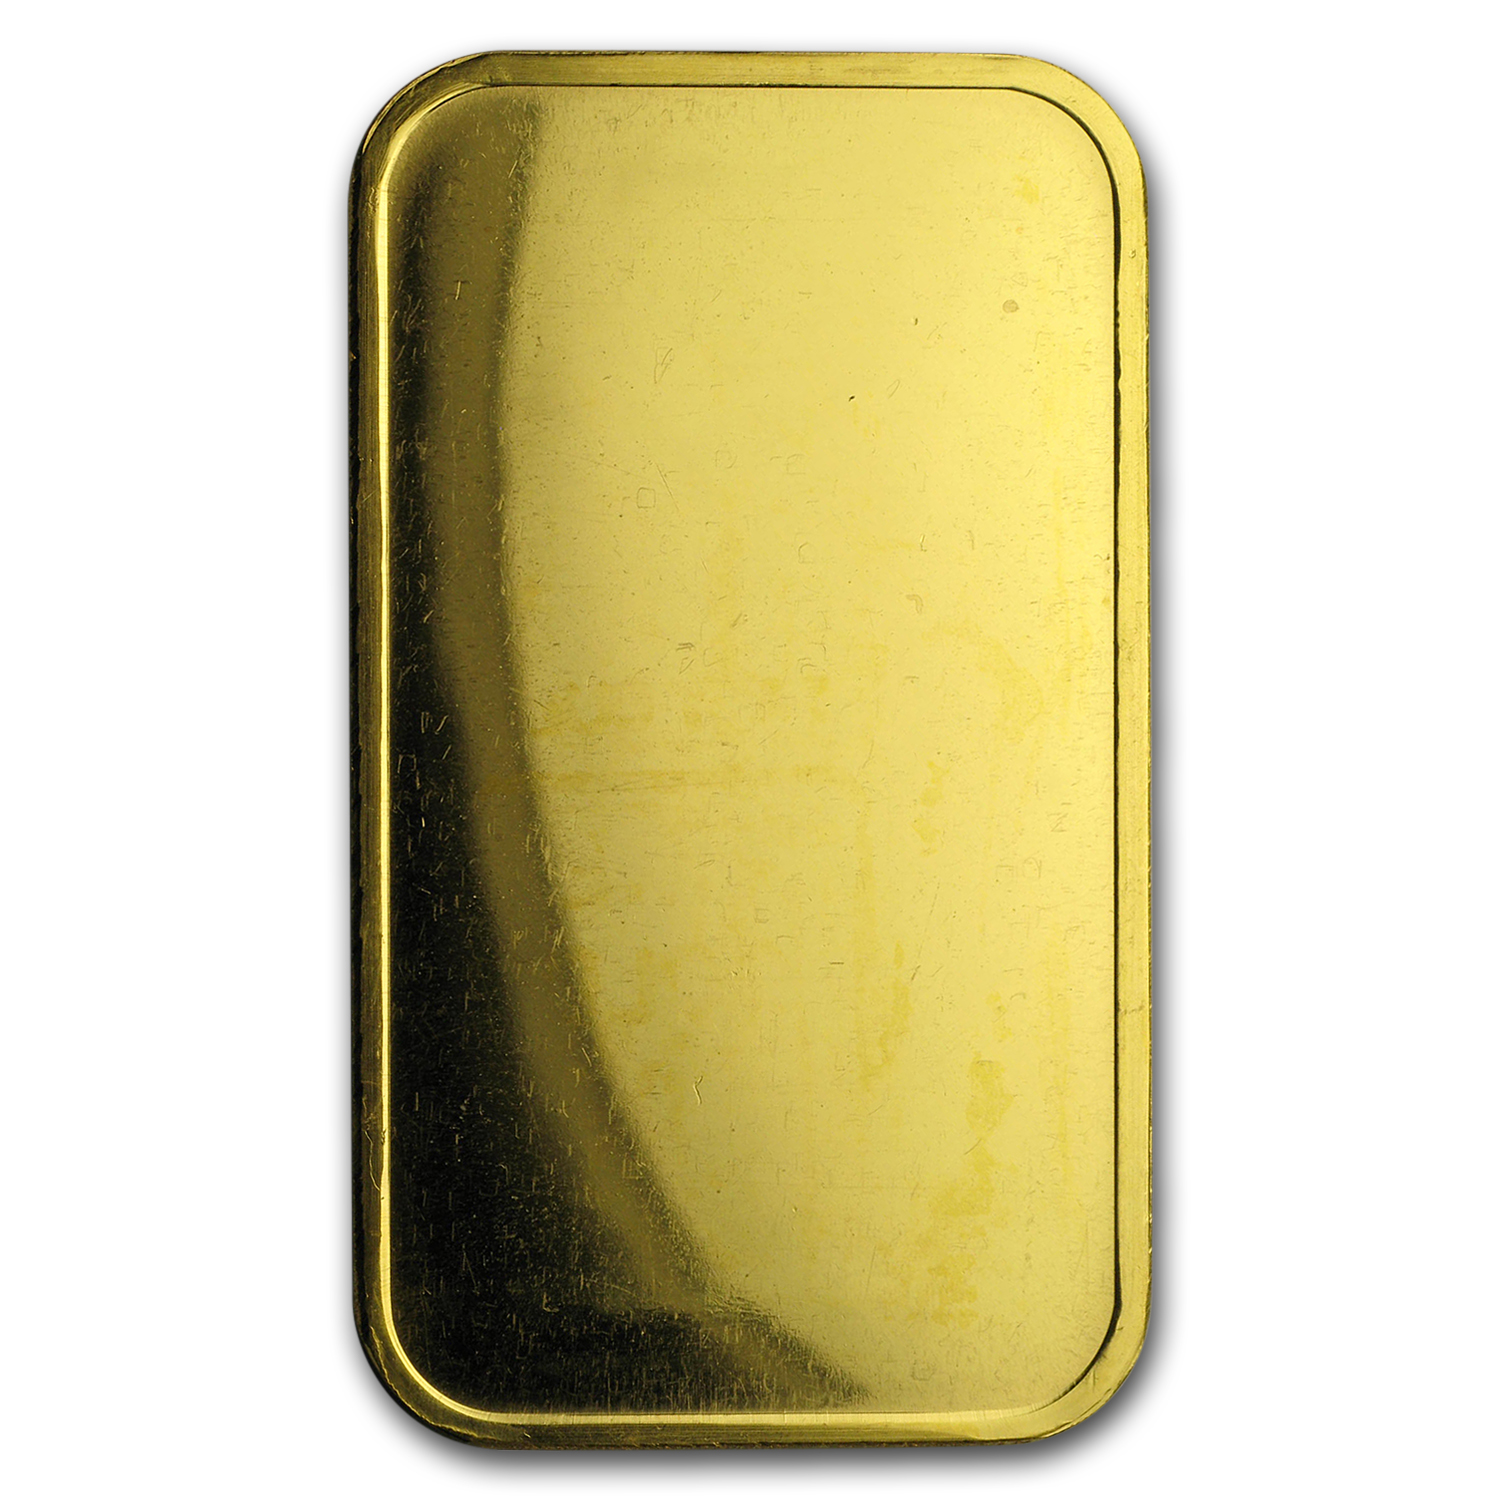 1 oz Gold Bars - Engelhard (Vintage)